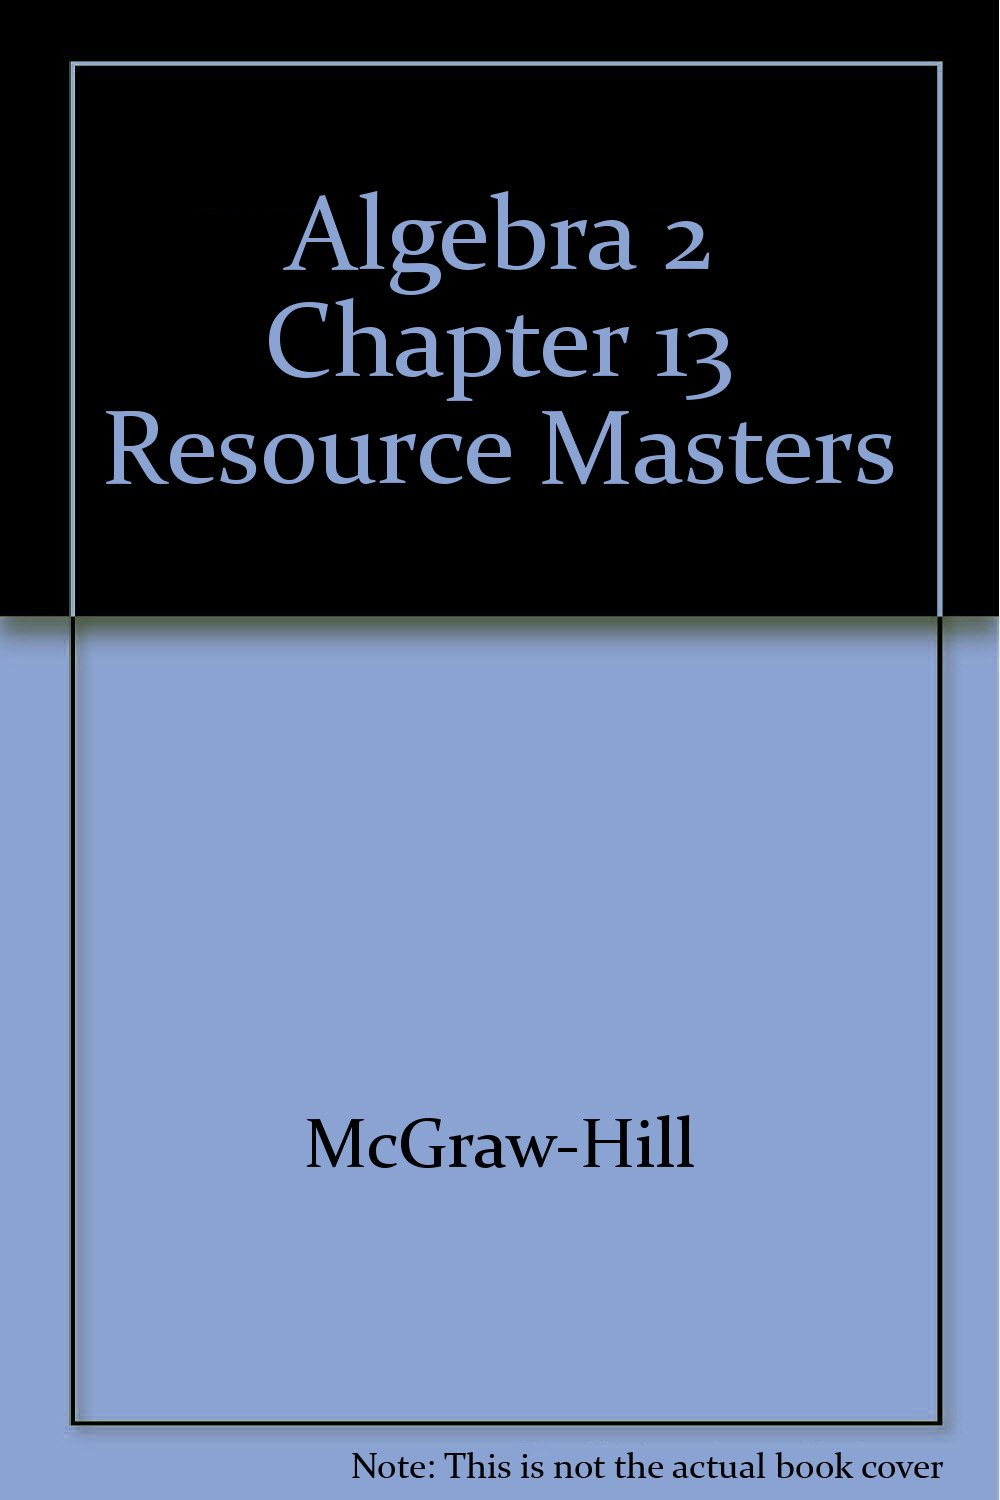 Read Online Algebra 2 Chapter 13 Resource Masters pdf